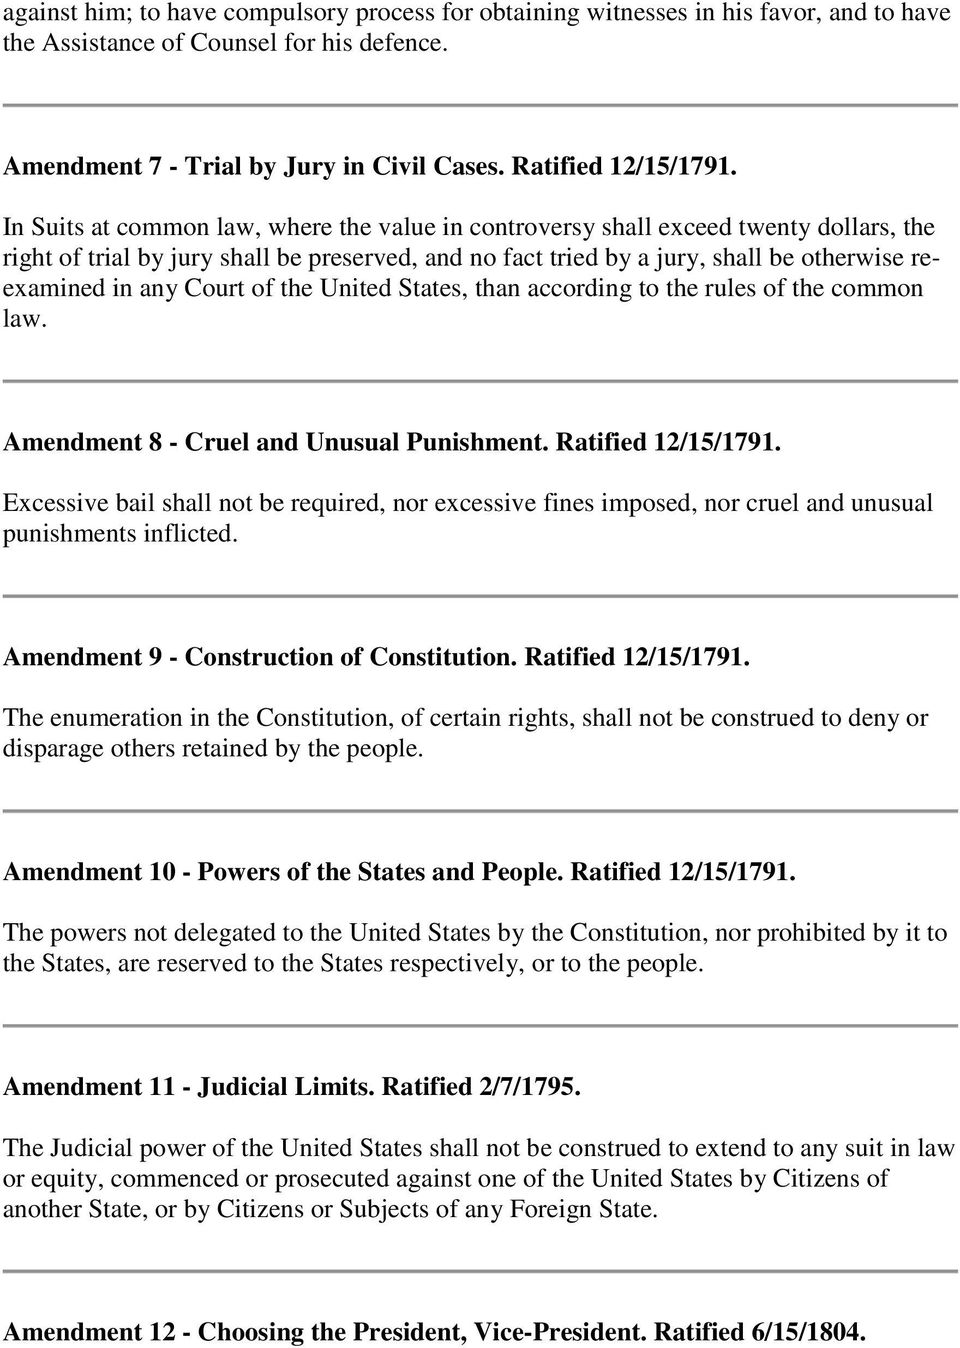 Court of the United States, than according to the rules of the common law. Amendment 8 - Cruel and Unusual Punishment. Ratified 12/15/1791.